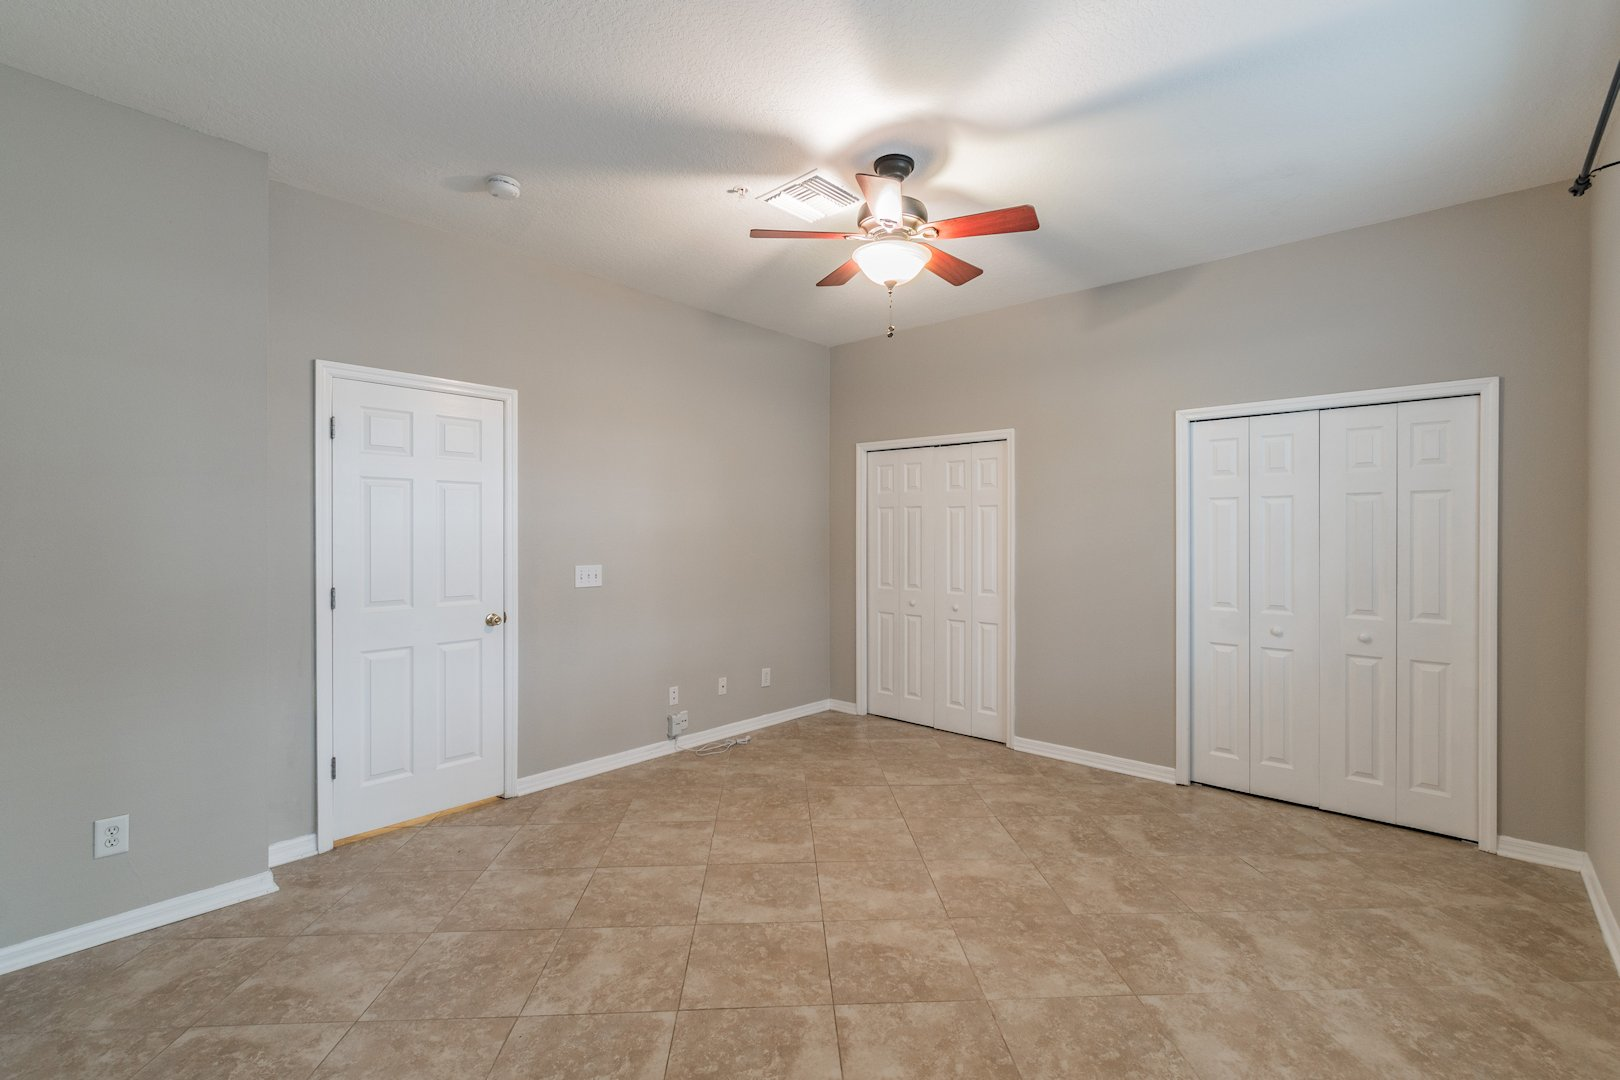 2929 bayshore Pointe Dr. Tampa Fl, Bayshore Pointe Townhomes (8)